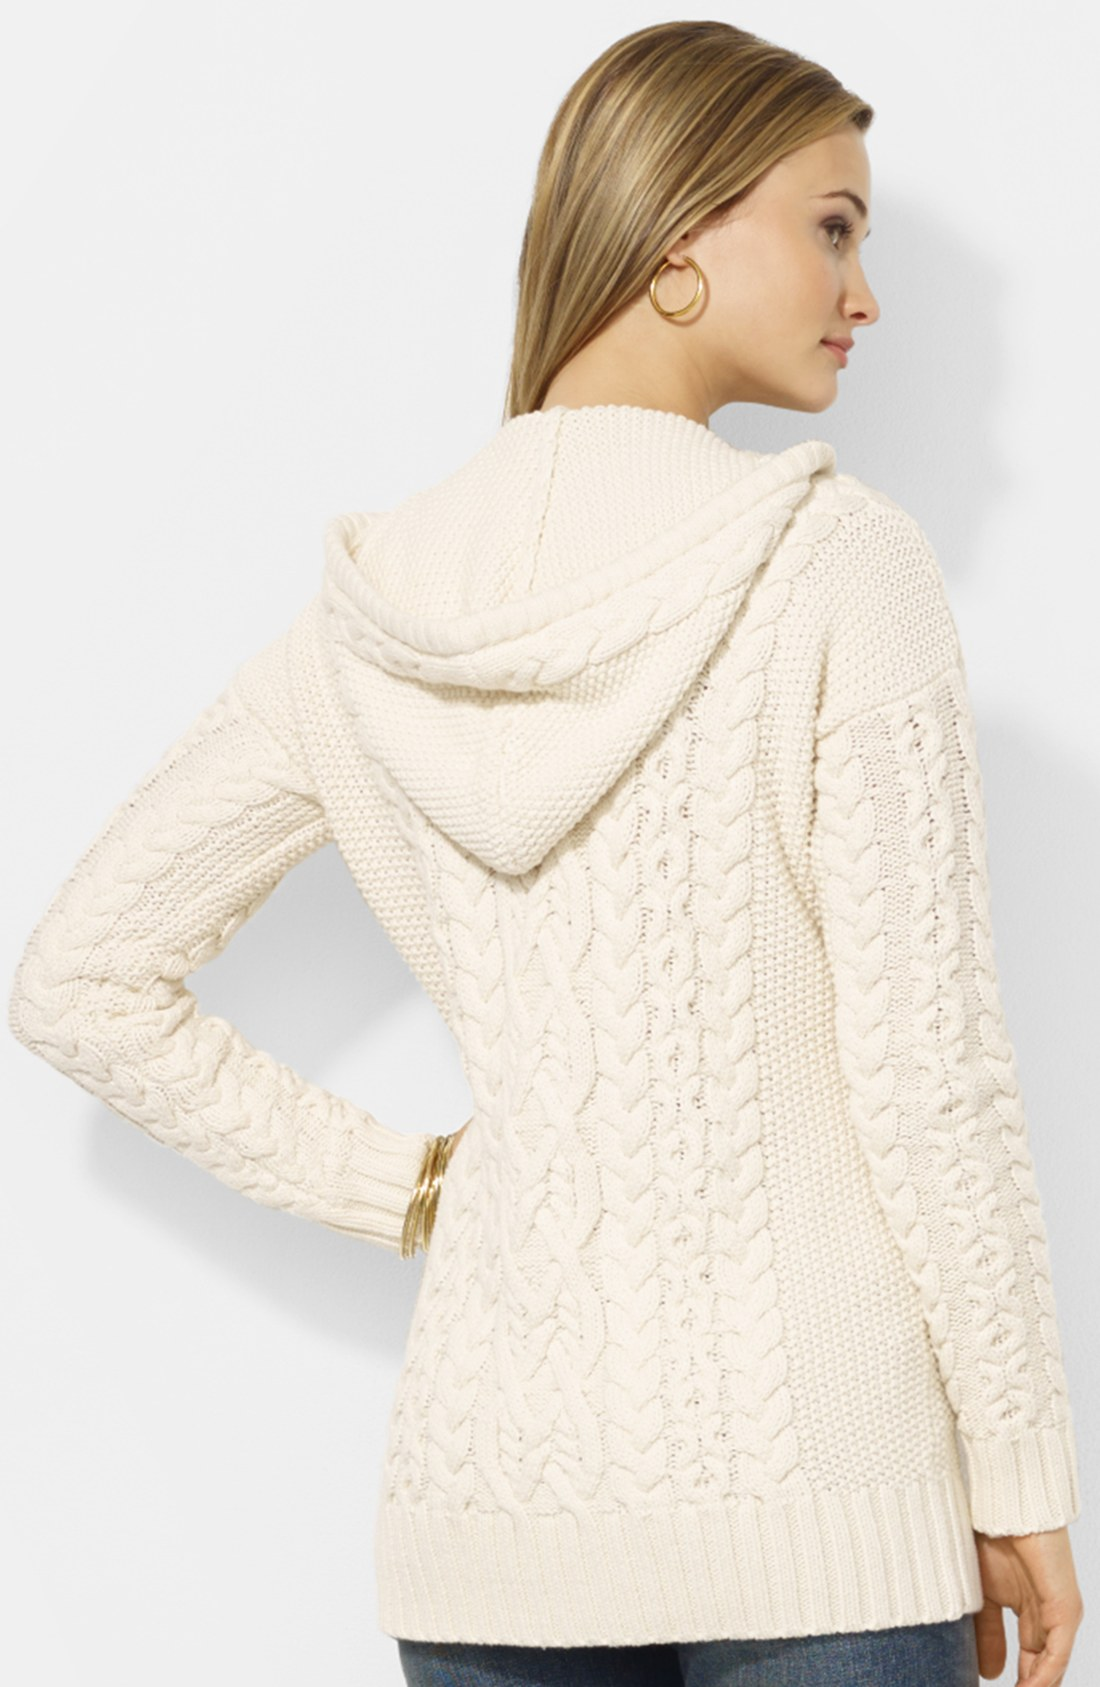 Lauren by ralph lauren Hooded Cable Knit Cardigan in Natural | Lyst